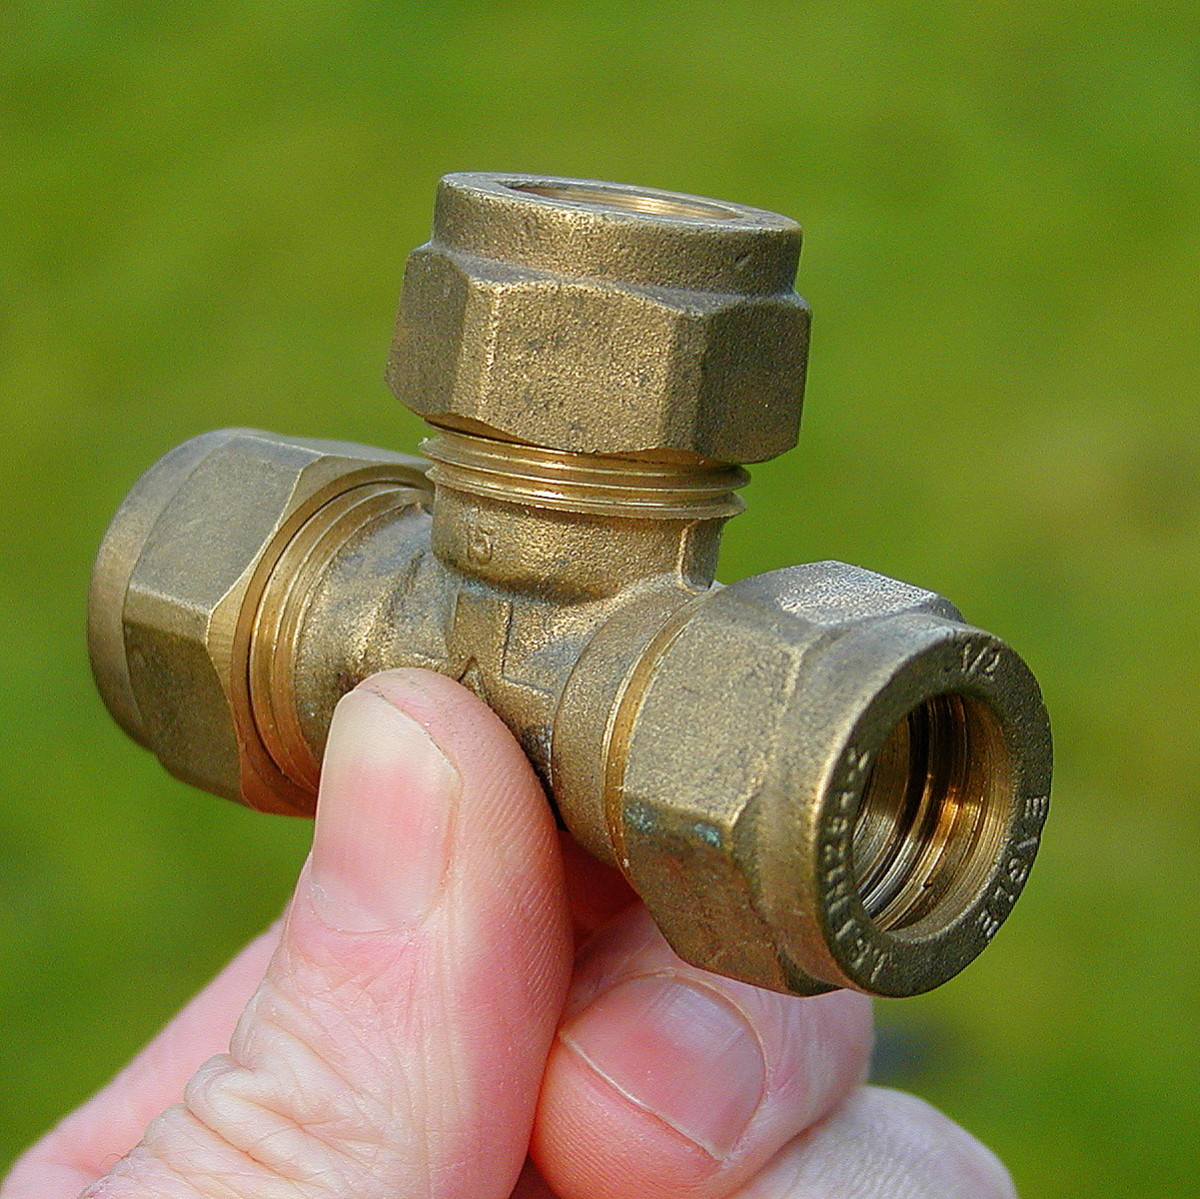 A Complete Guide to Using Plumbing Fittings for Joining PVC, PEX, and Copper Pipe